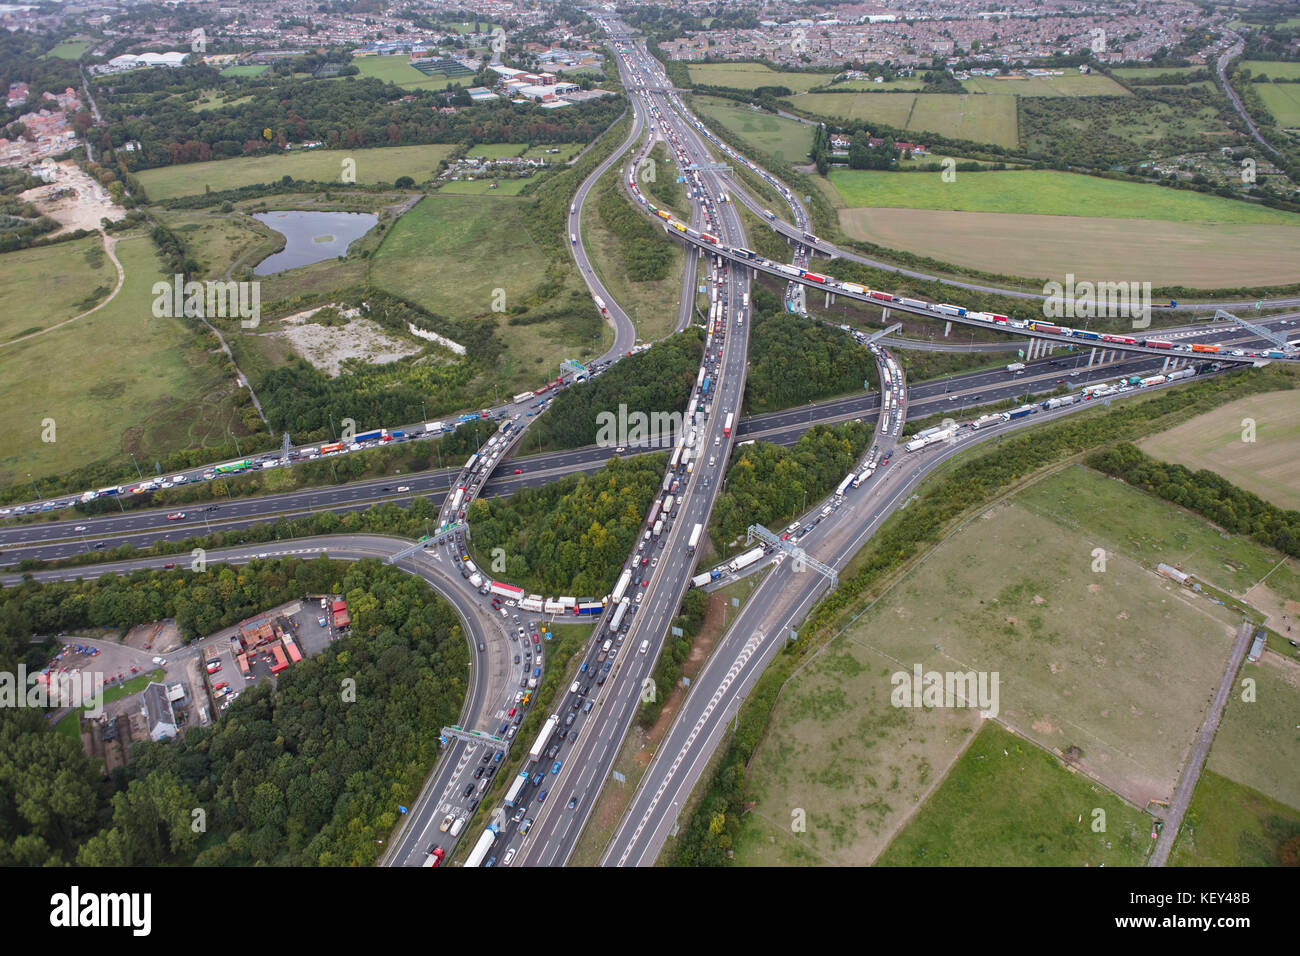 An aerial view of Motorway congestion around Junction 2 of the M25 - Stock Image